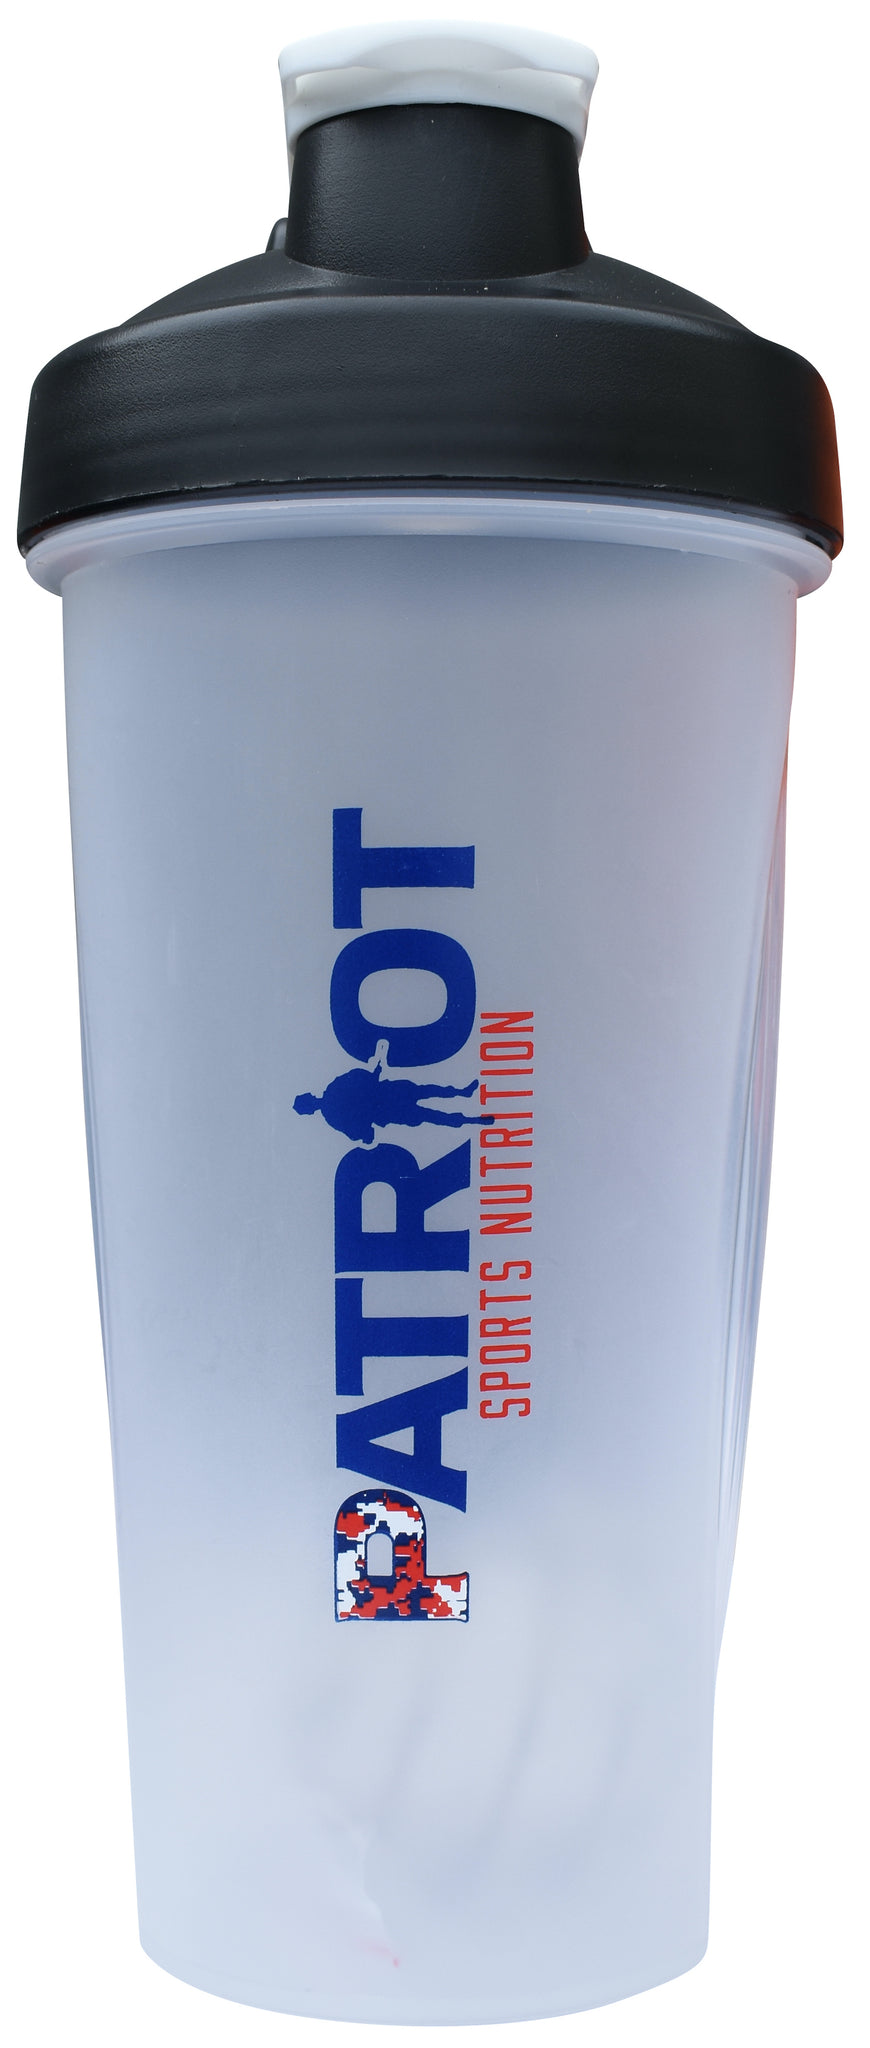 Fitness Supplement Shaker Bottle - Patriot Sports Nutrition